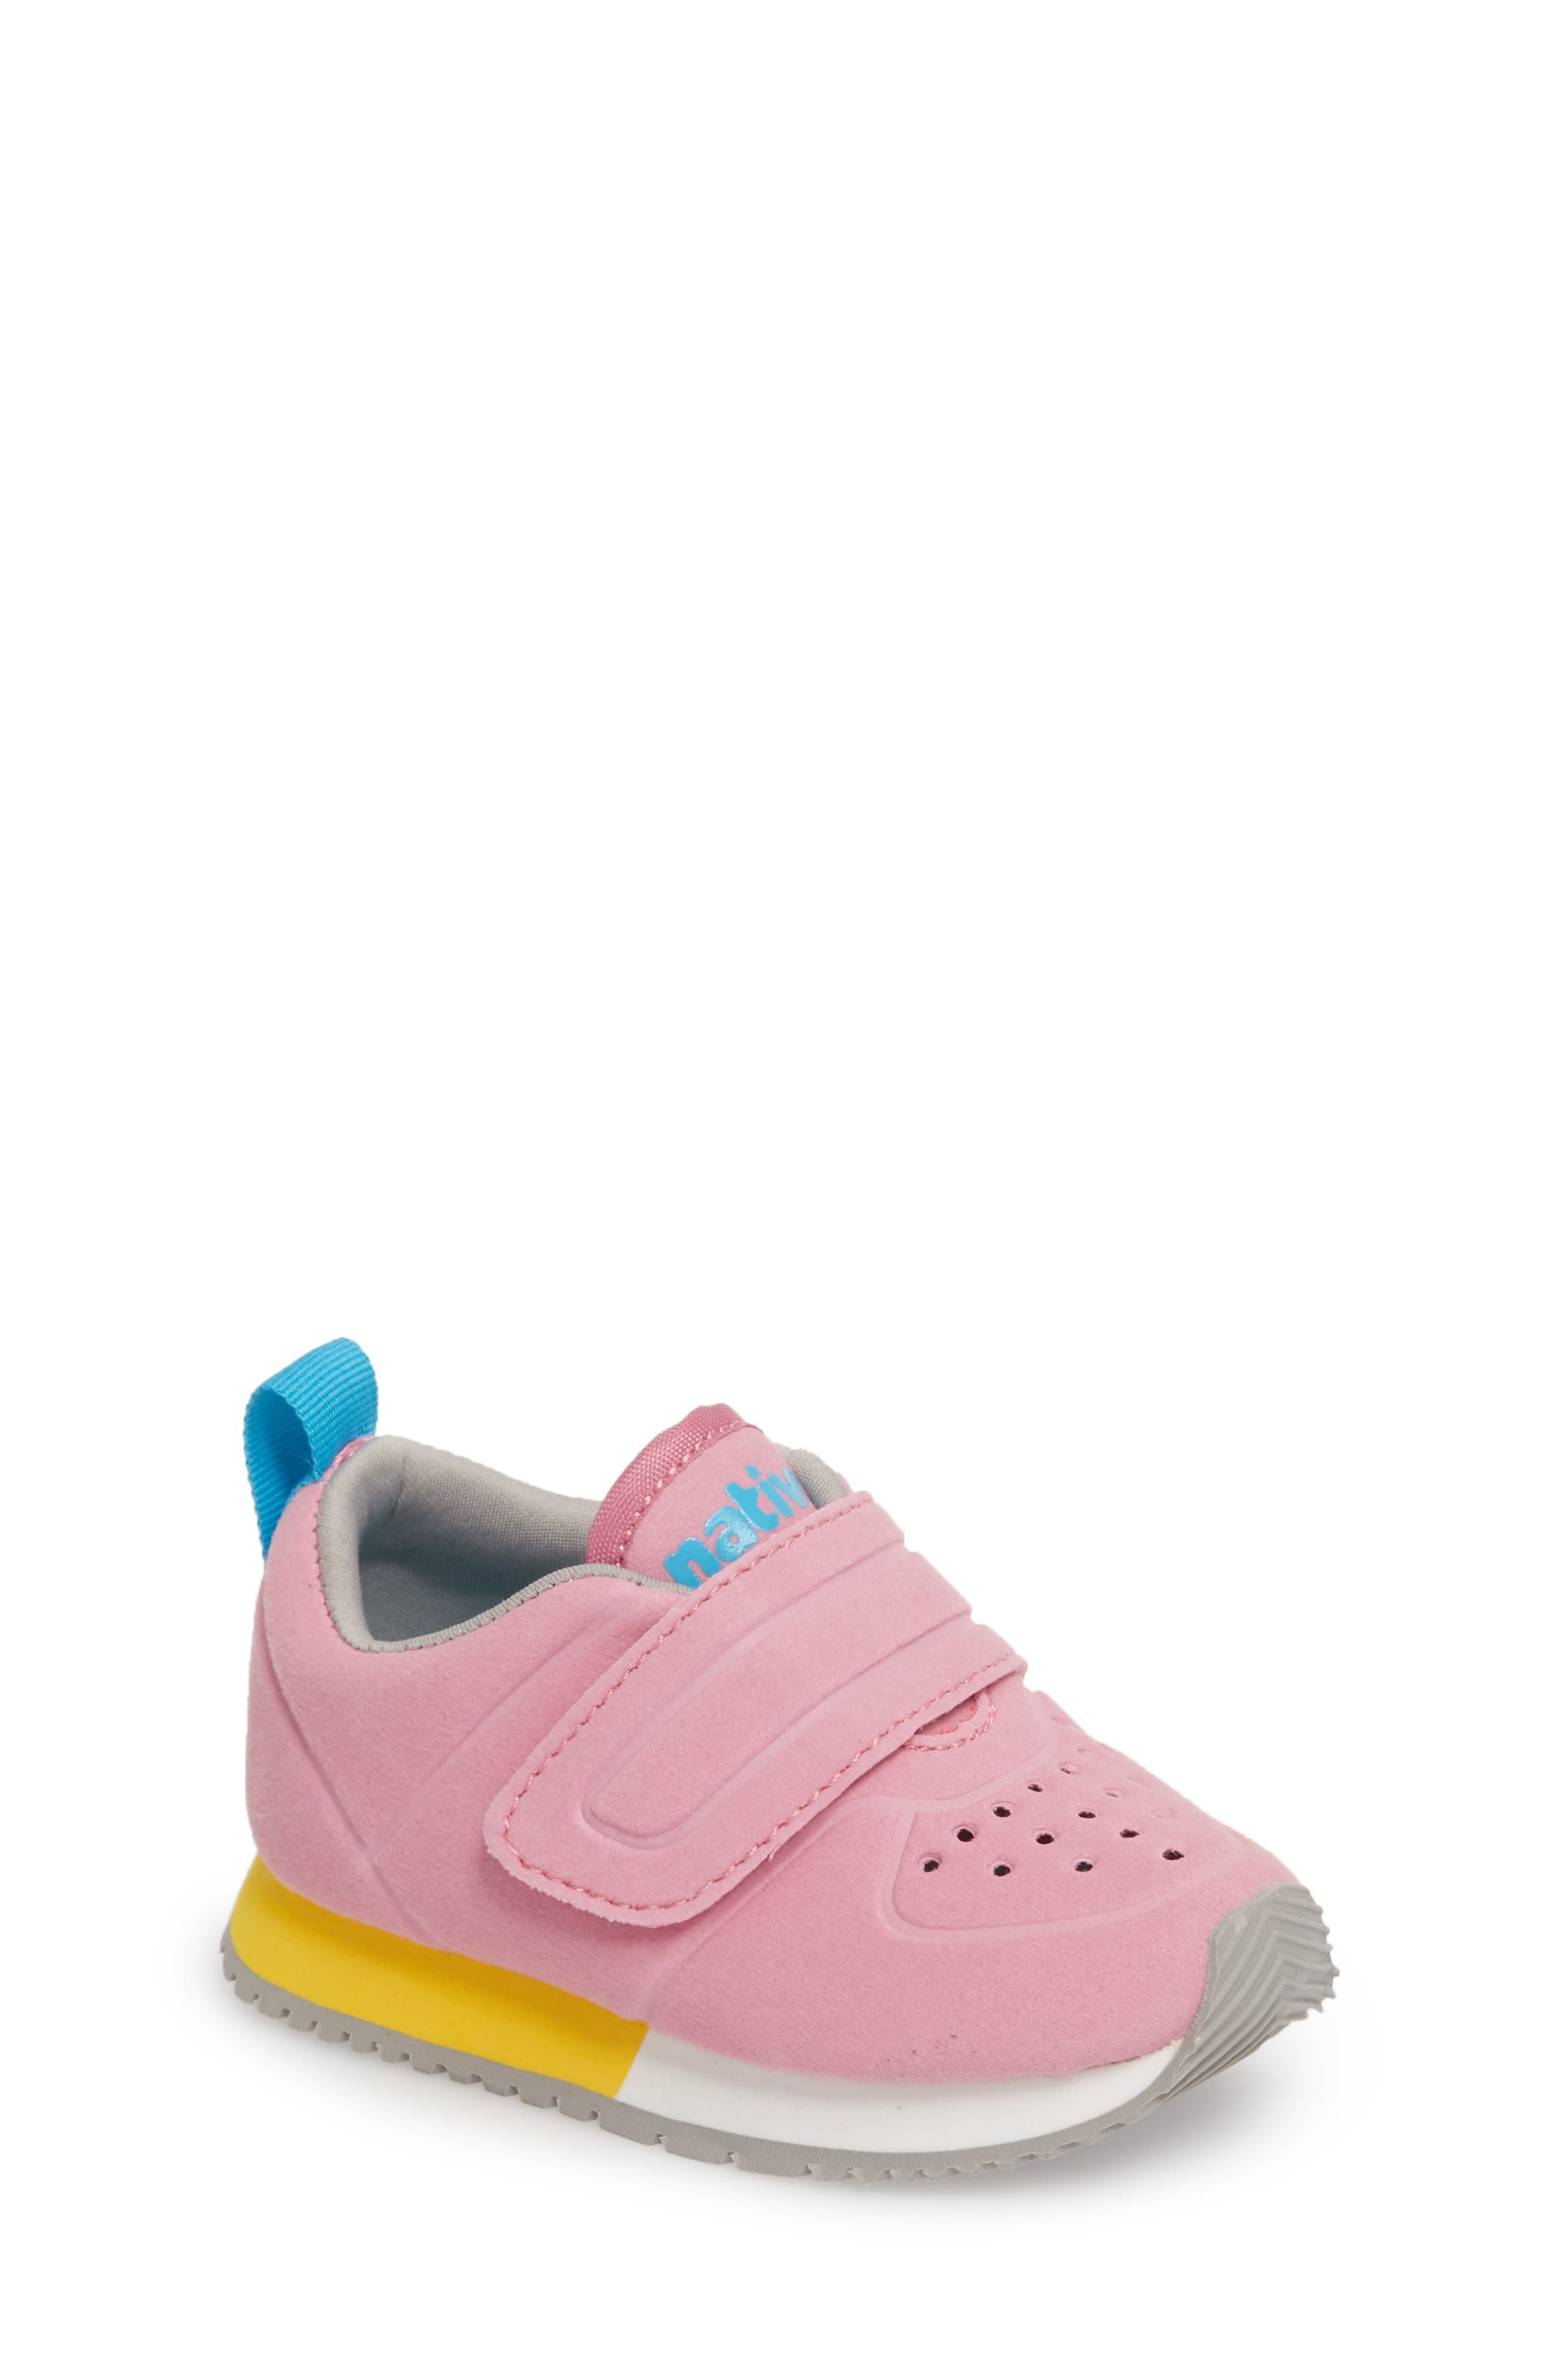 Native Cornell Perforated Sneaker,                             Main thumbnail 1, color,                             Malibu Pink/ White/ Blue